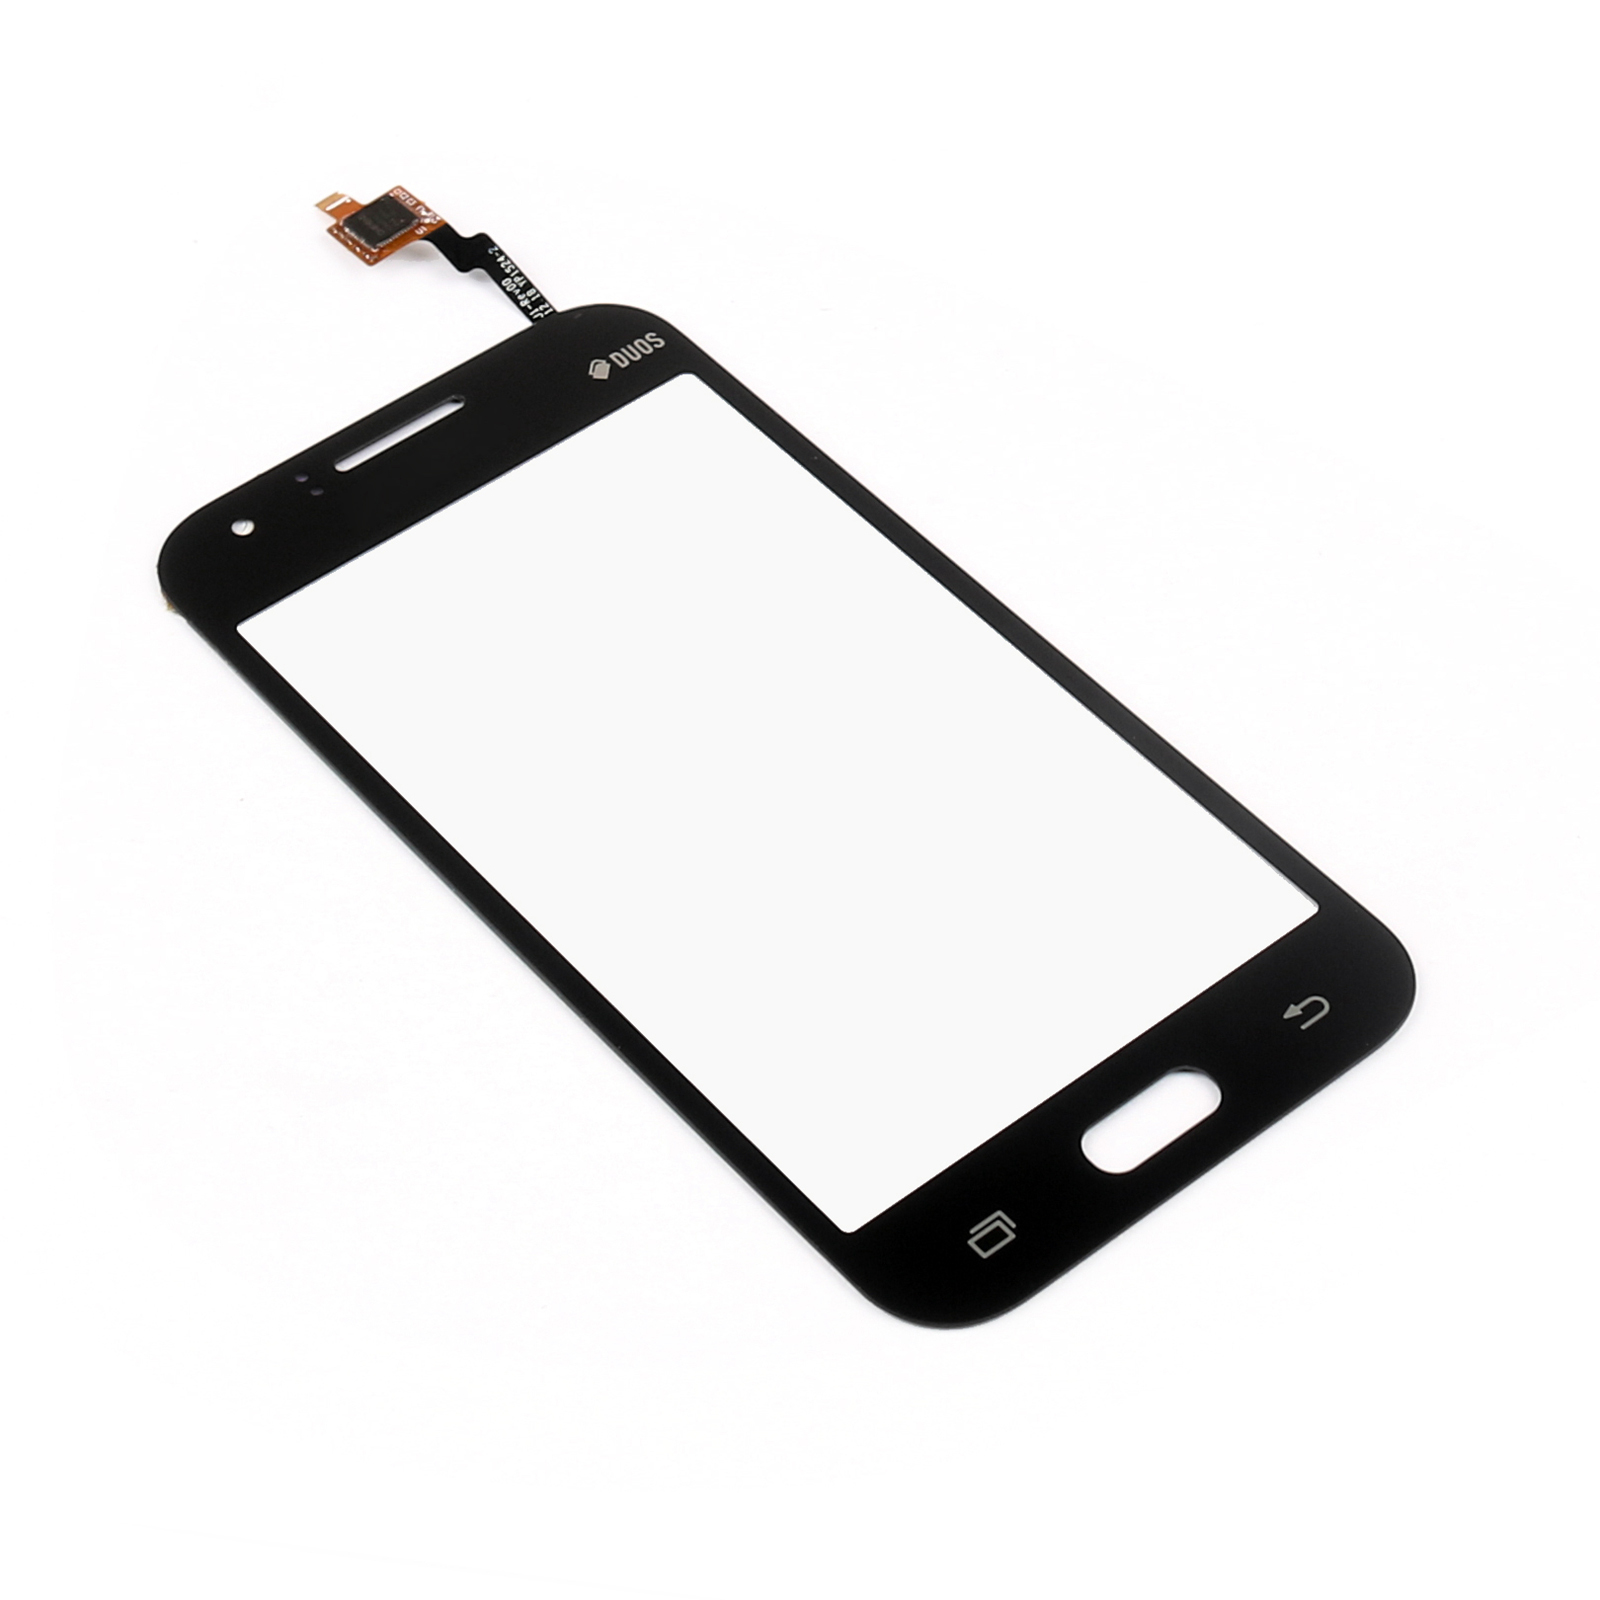 Panel Touch Digitizer Screen For Samsung Galaxy J1 4g Sm J100 Black 4gb Biru Source A Brand New High Quality Each Item Has Been Tested Before Shipping And